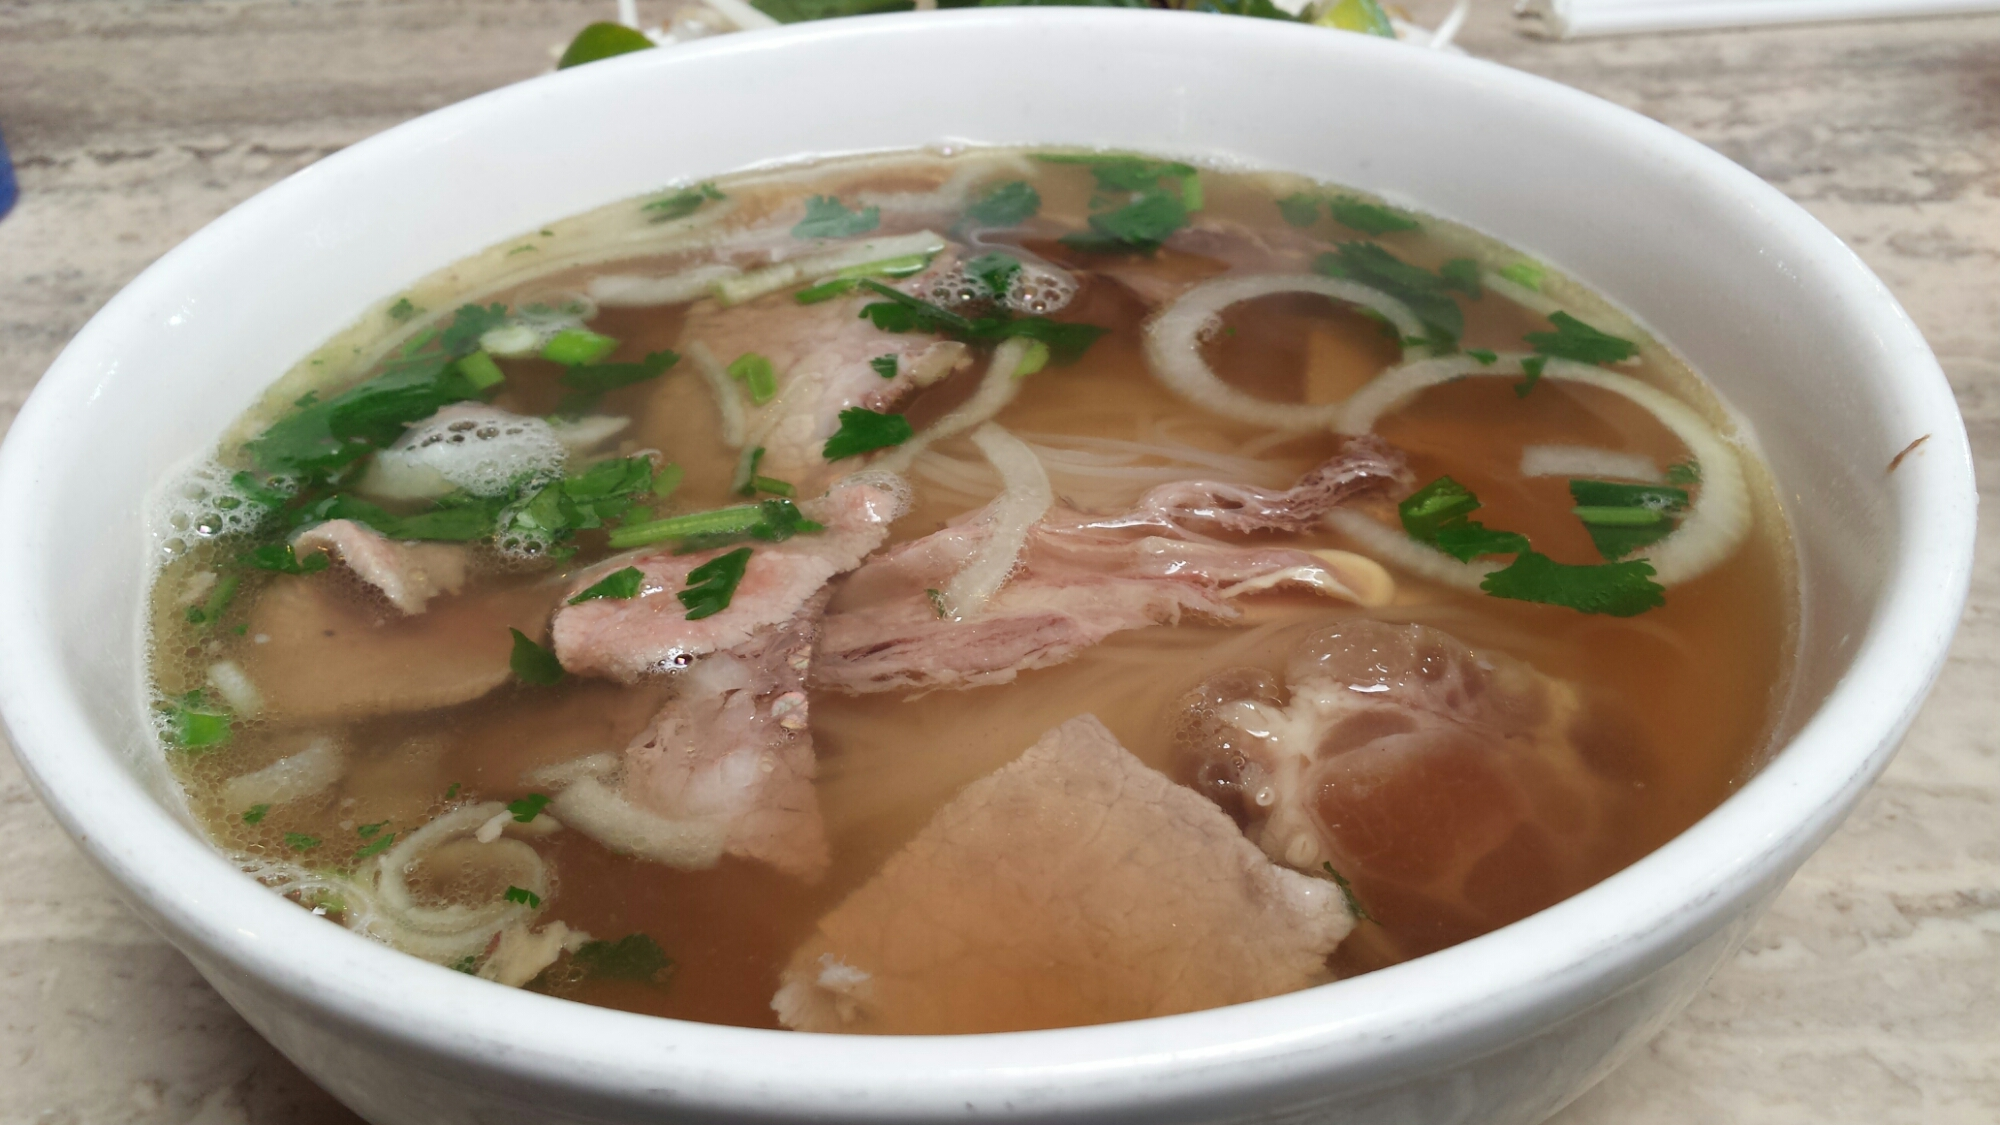 Pho Soup - Eye Round Steak, Well Done Brisket, Flank, Soft Tendon & Tripe